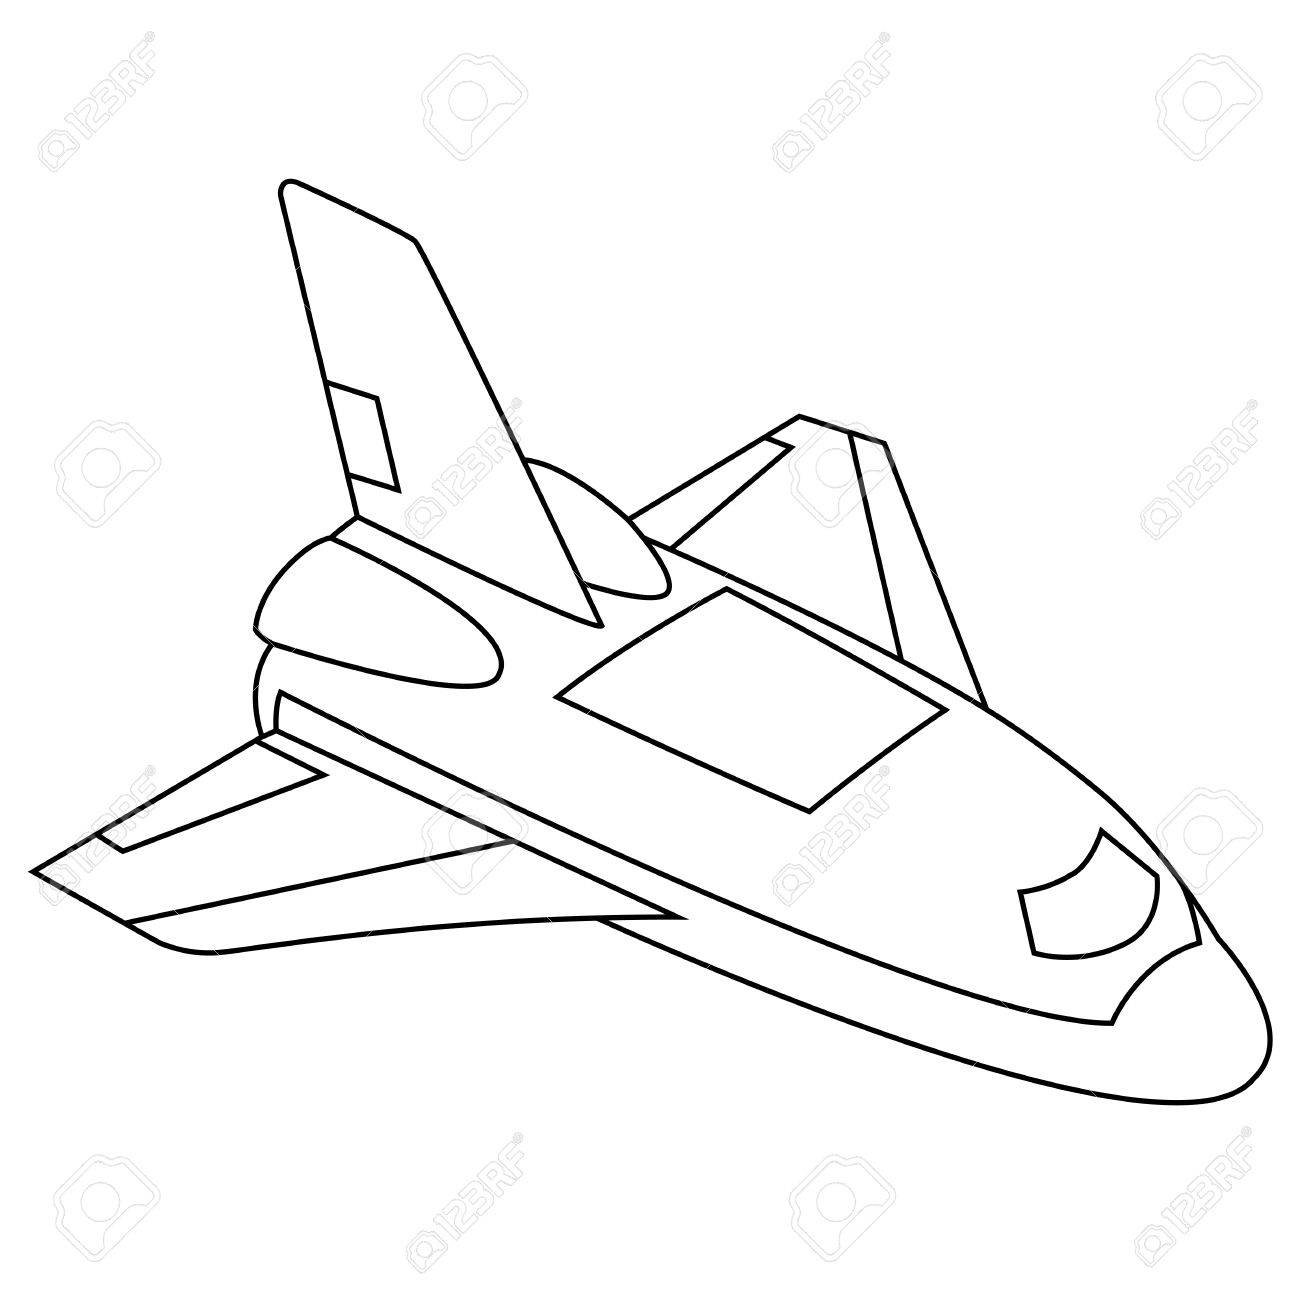 1300x1300 Black Outline Vector Spacecraft On White Background. Royalty Free